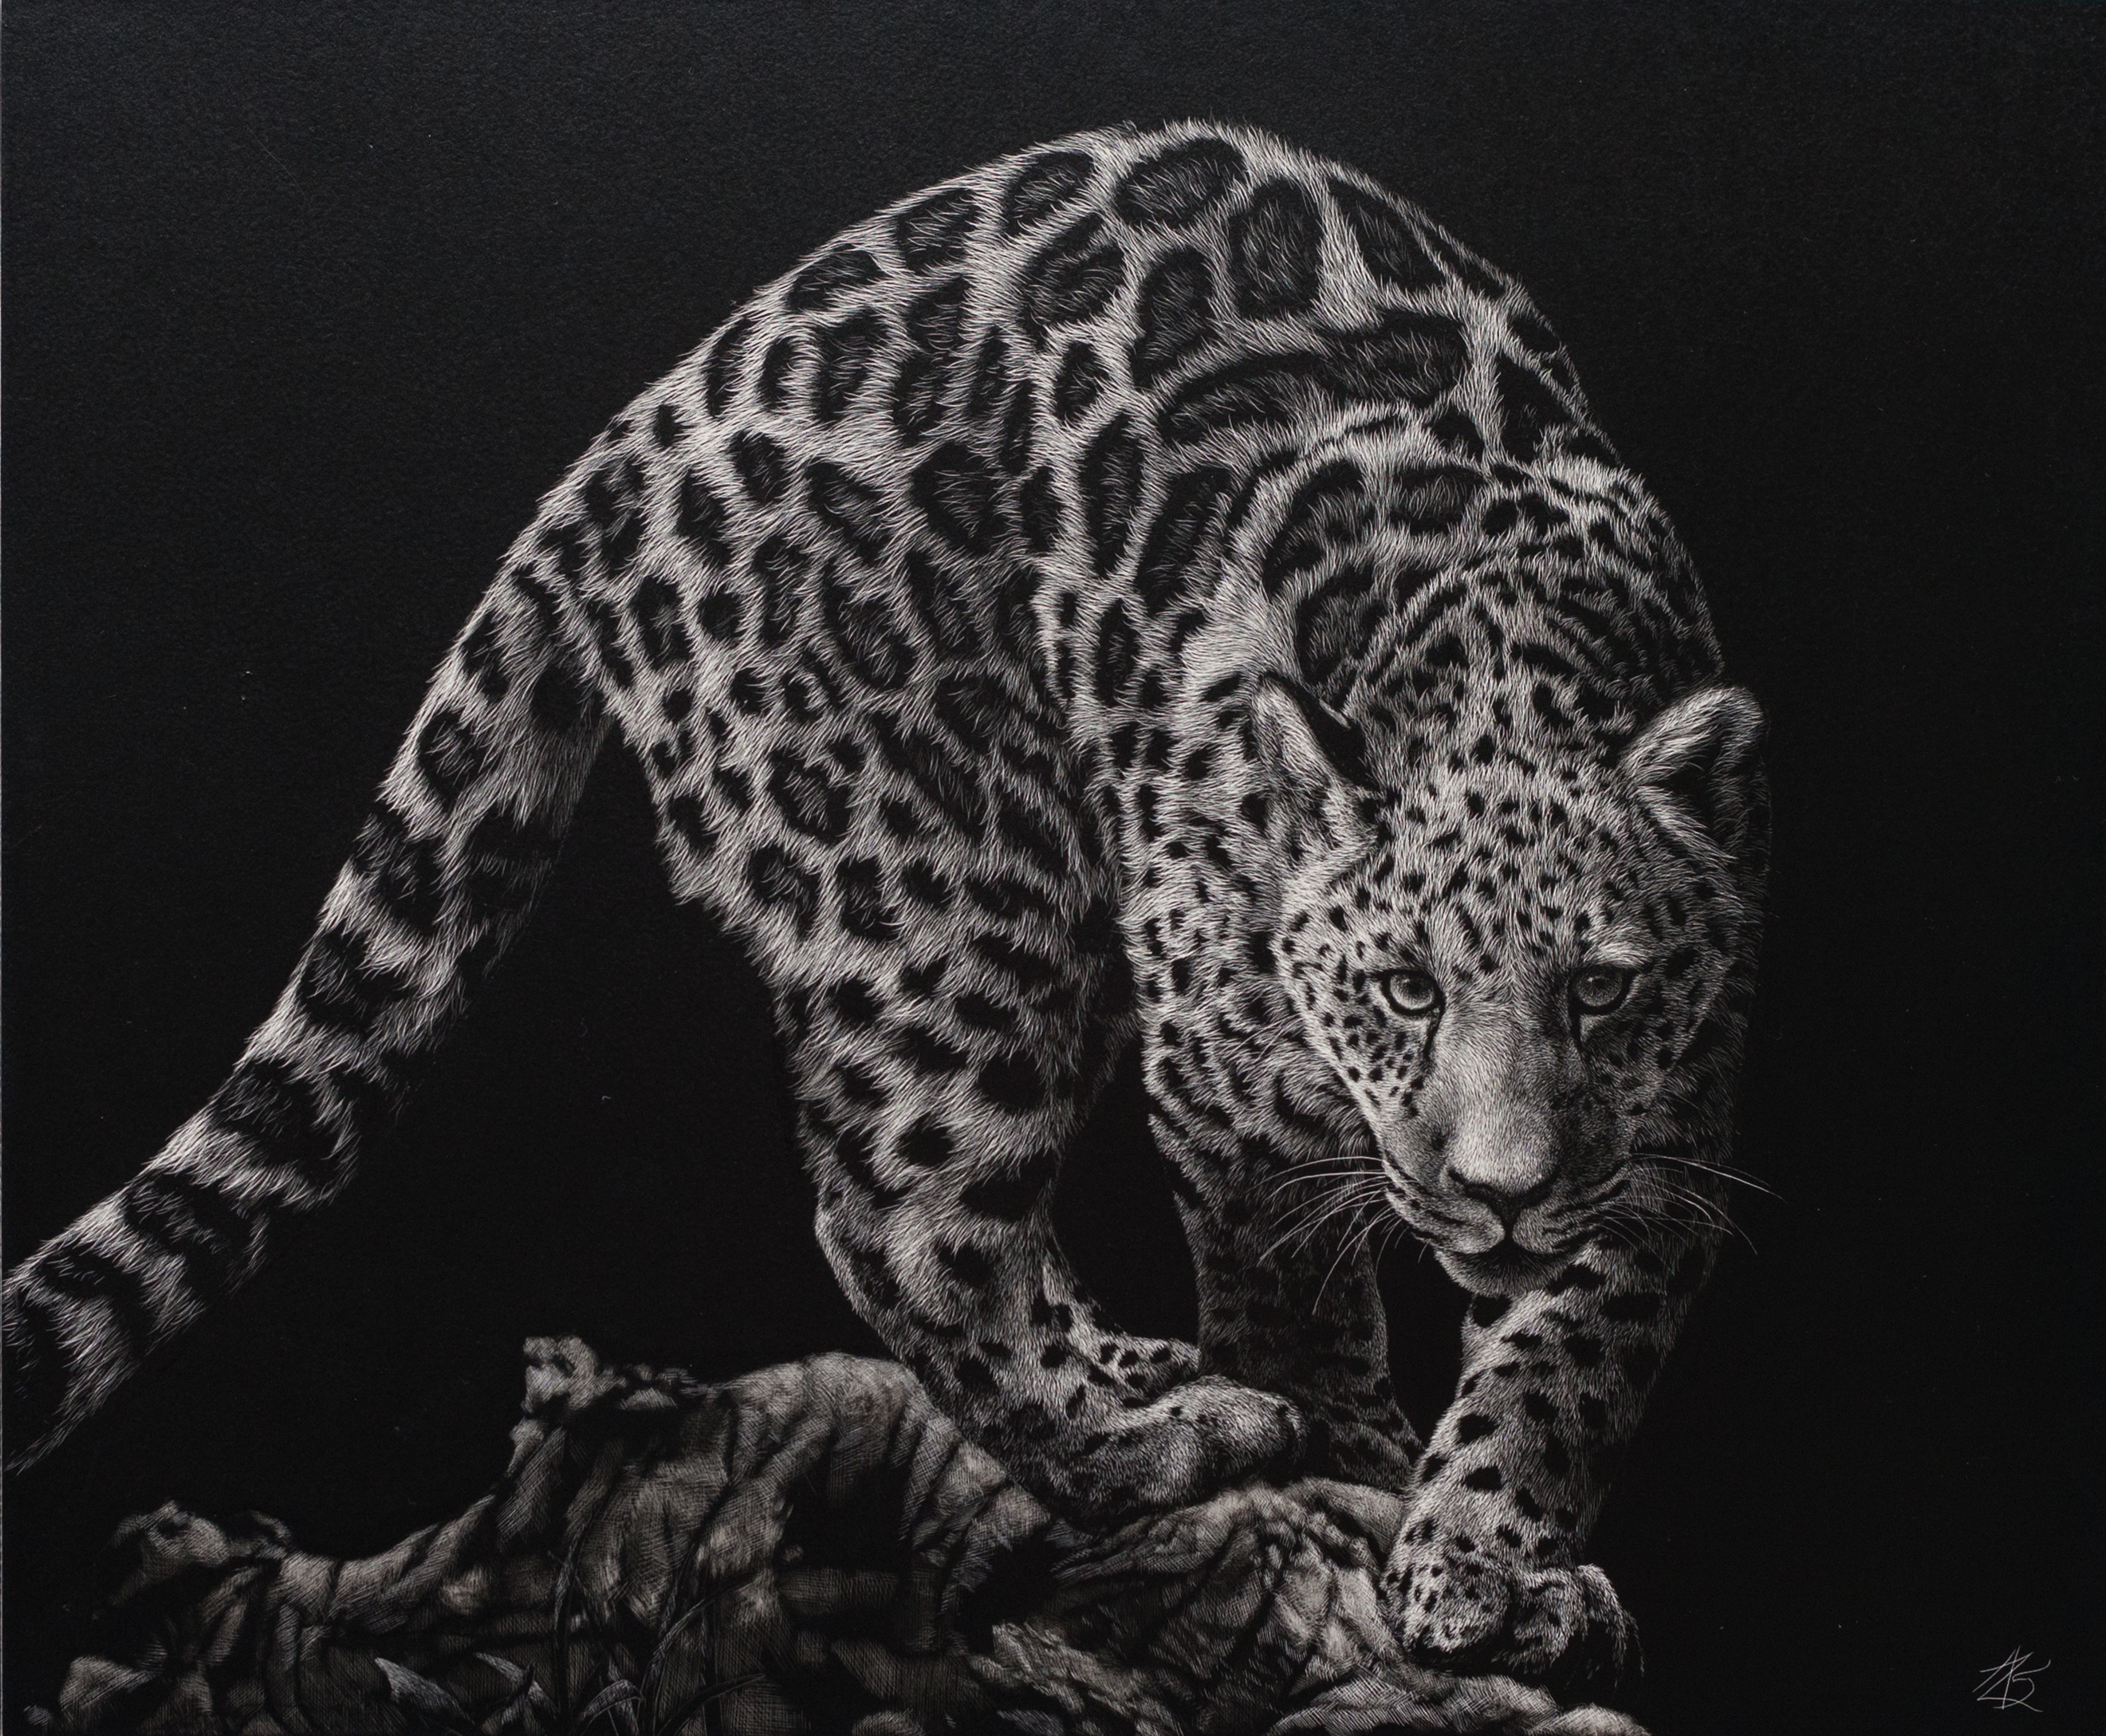 Scratchboard Amy Stauffer